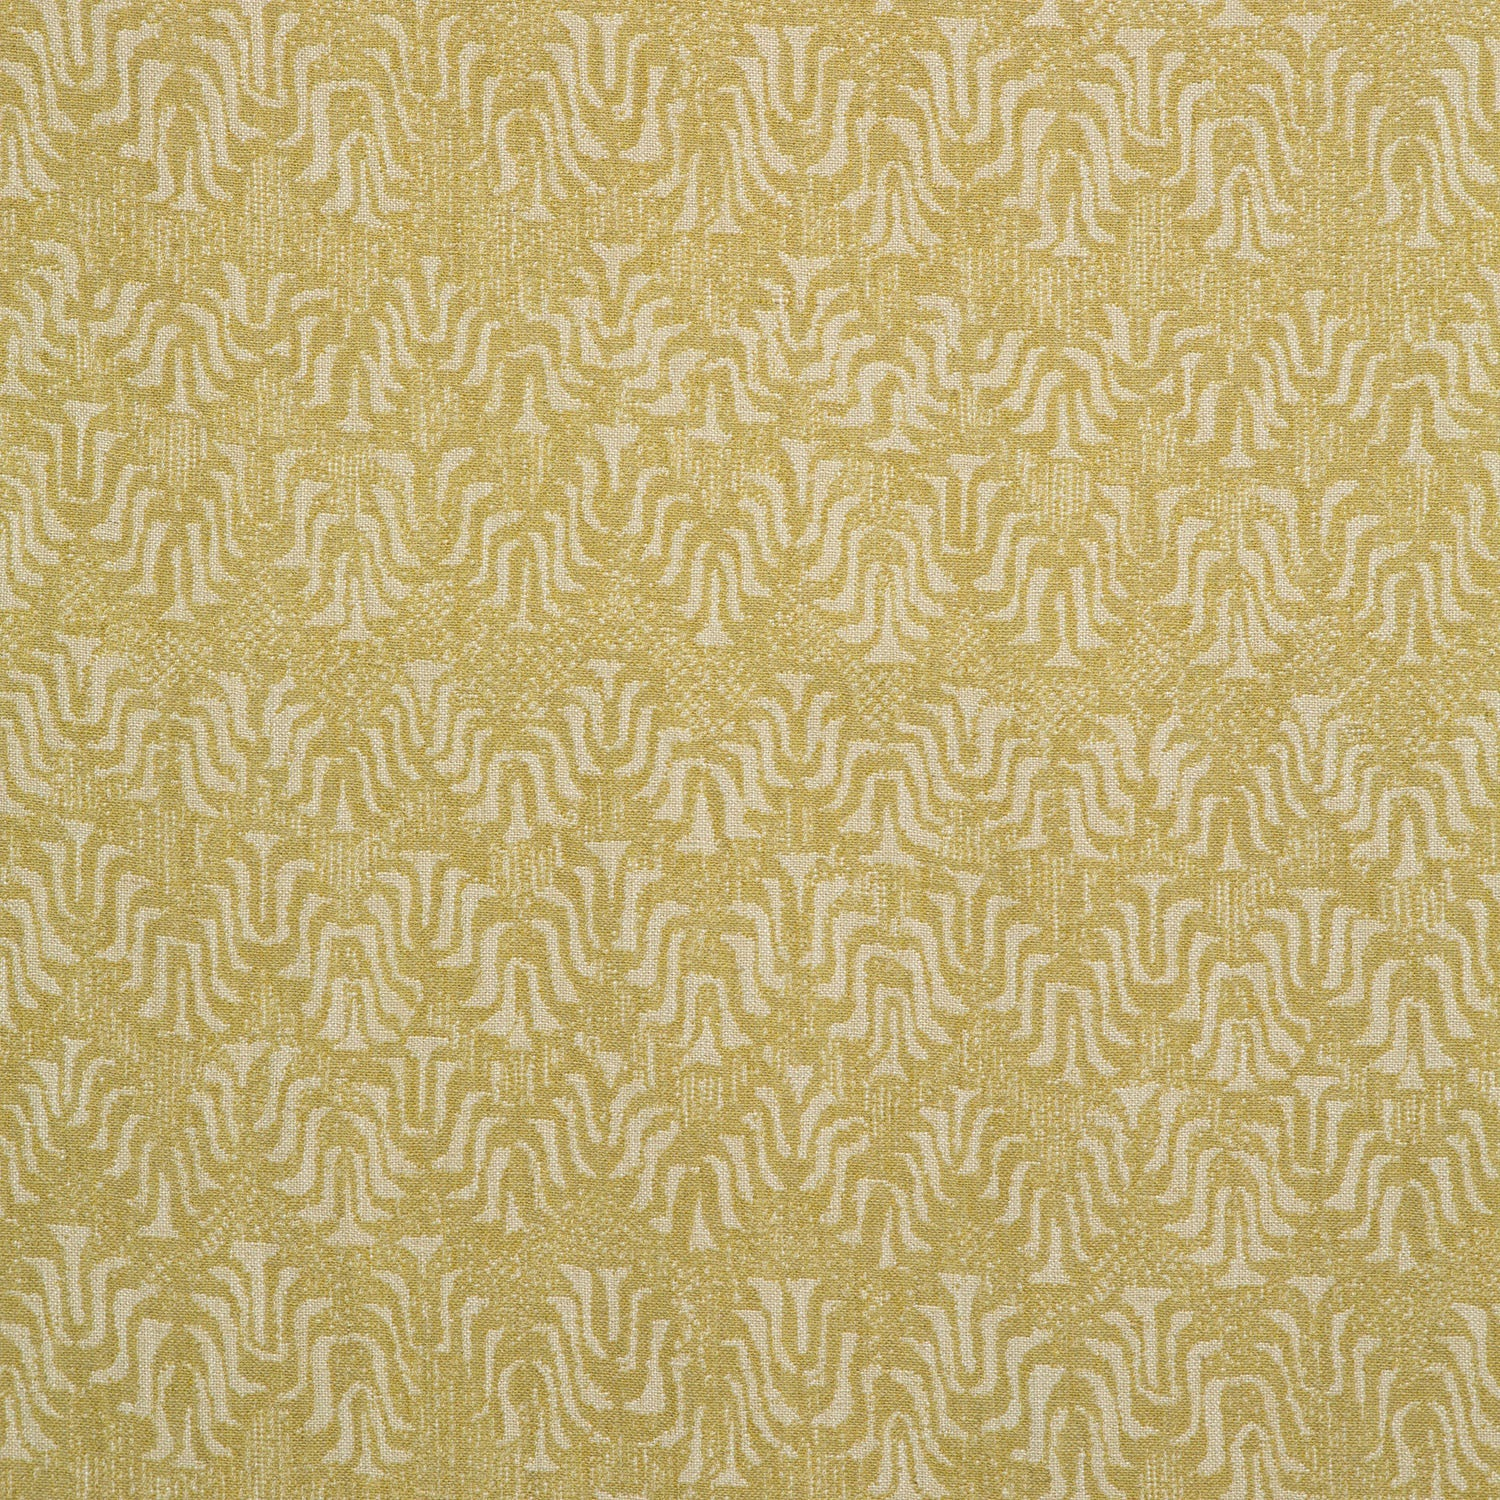 Fabric swatch of a yellow and neutral jacquard weave fabric for curtains and upholstery